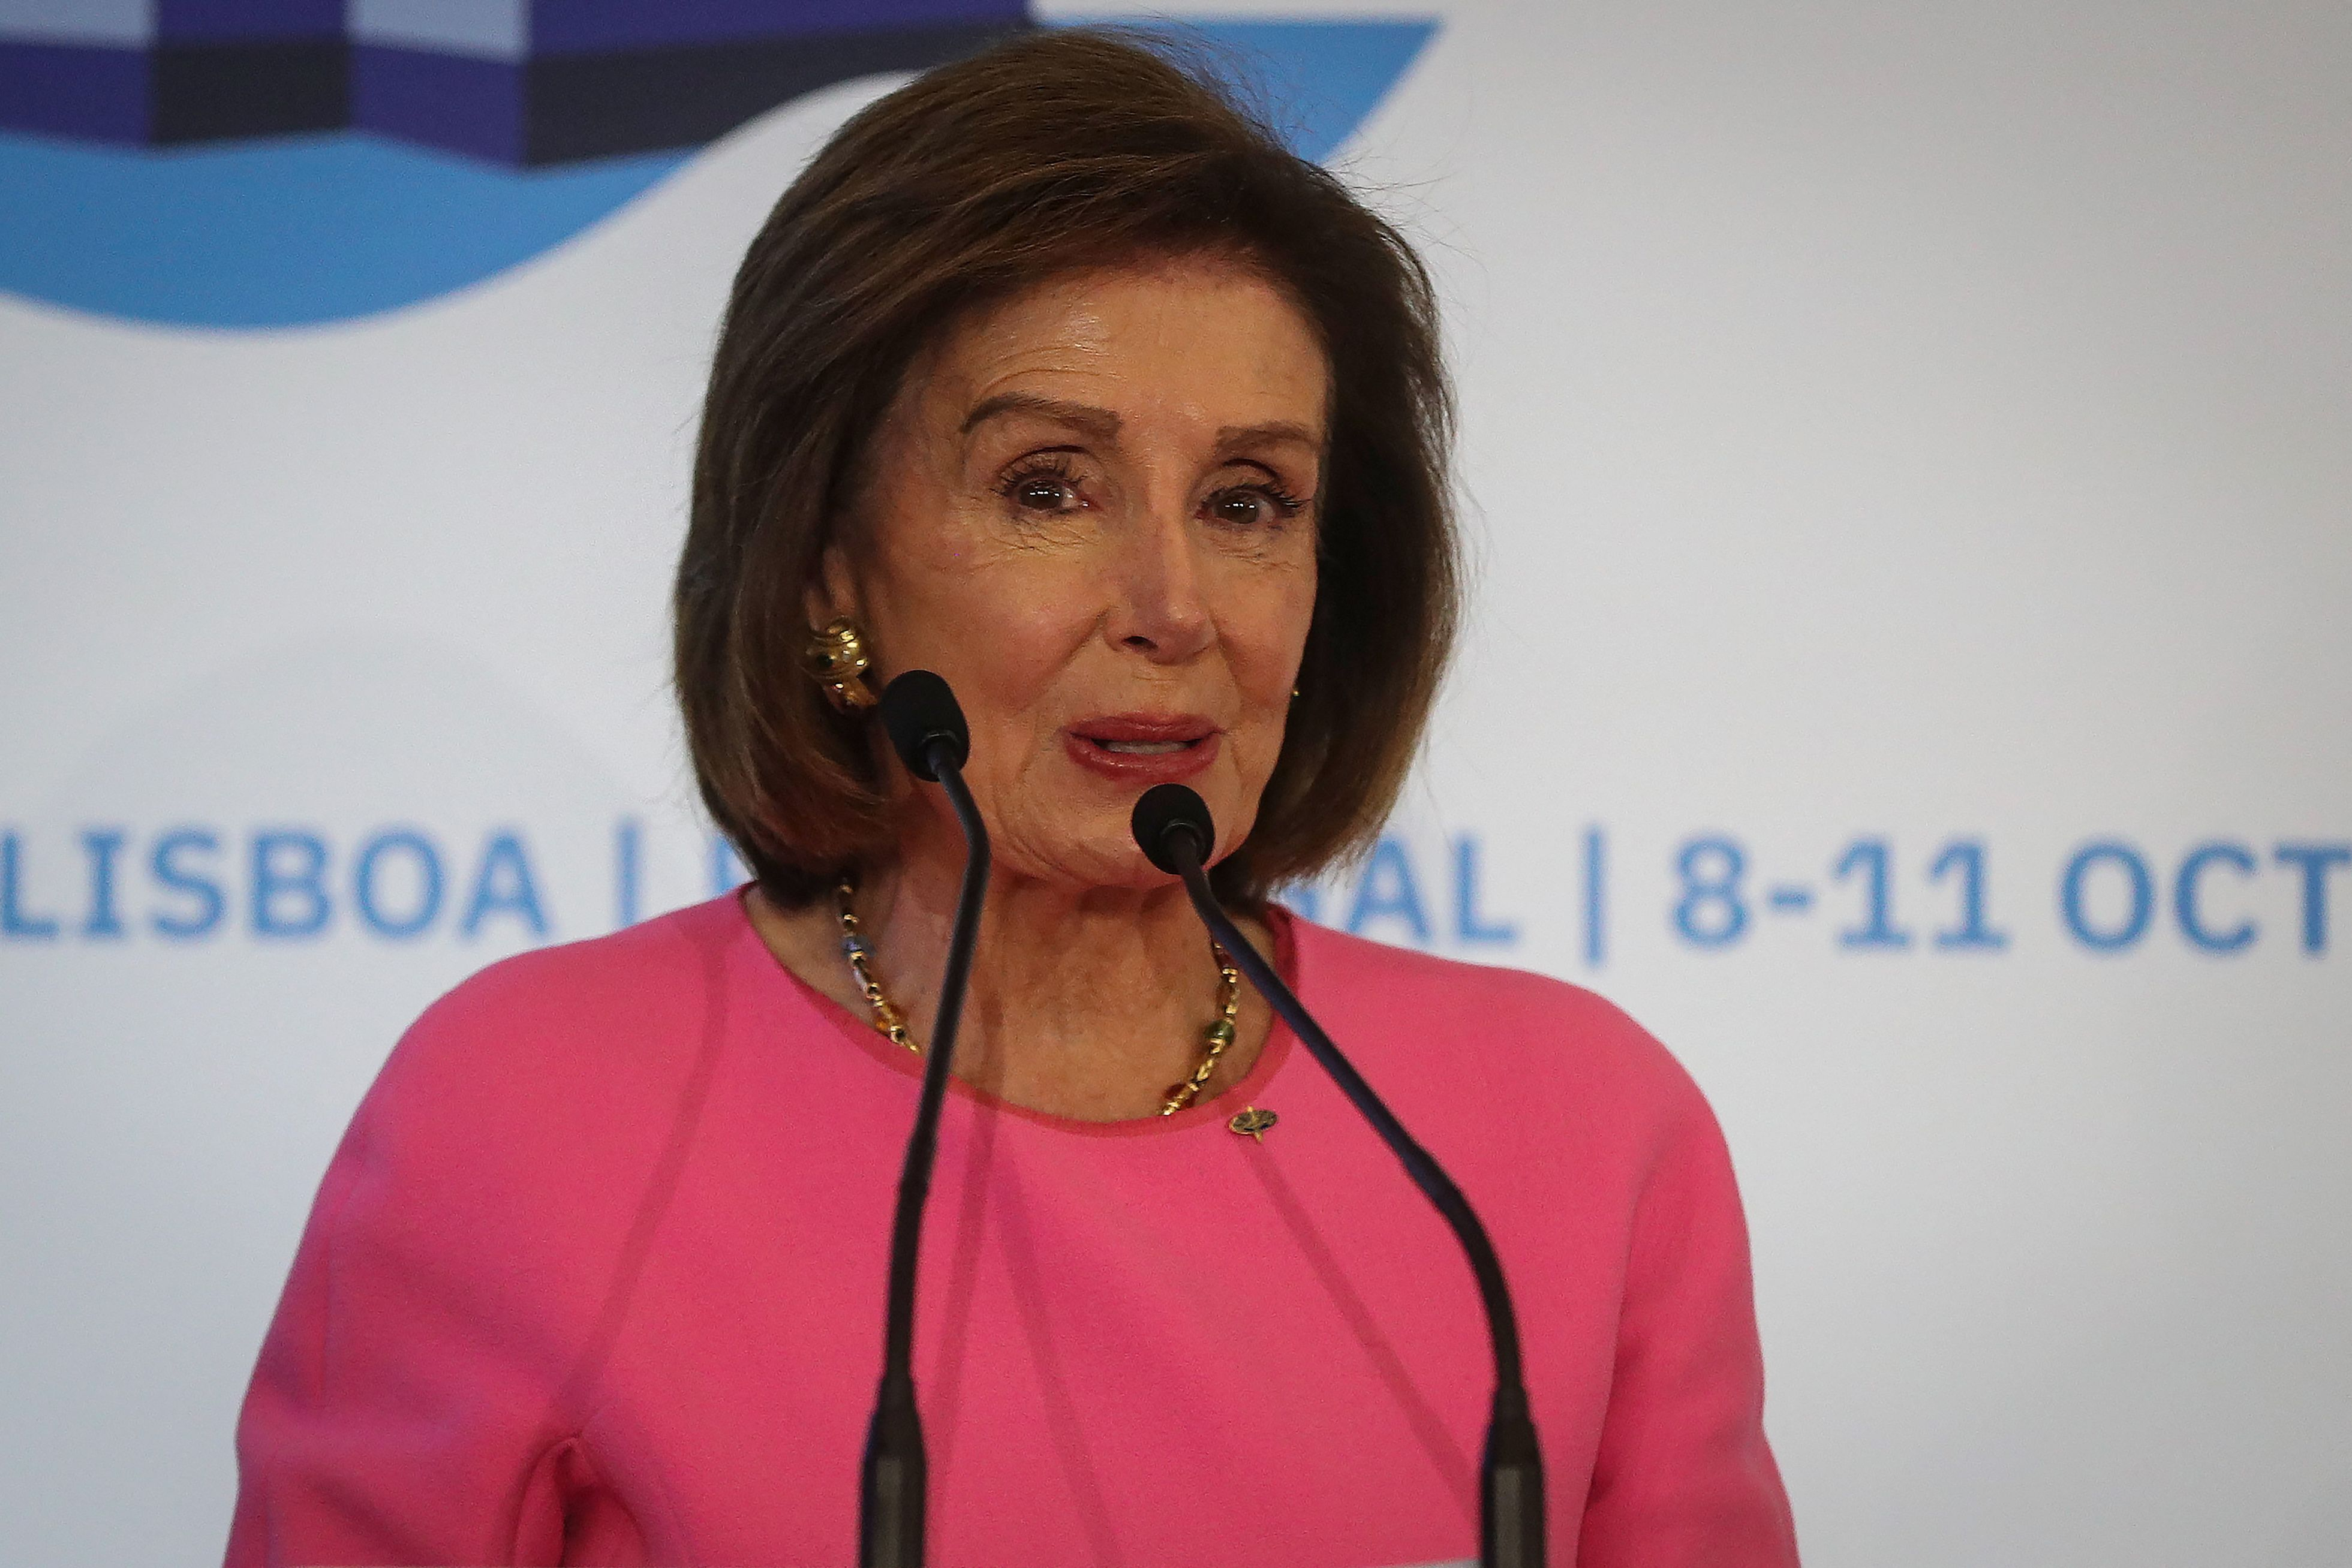 US Speaker of the House Nancy Pelosi speaks during the 67th annual session of NATO parliamentary assembly in Lisbon, on October 11, 2021. (Photo by CARLOS COSTA / AFP) (Photo by CARLOS COSTA/AFP via Getty Images)